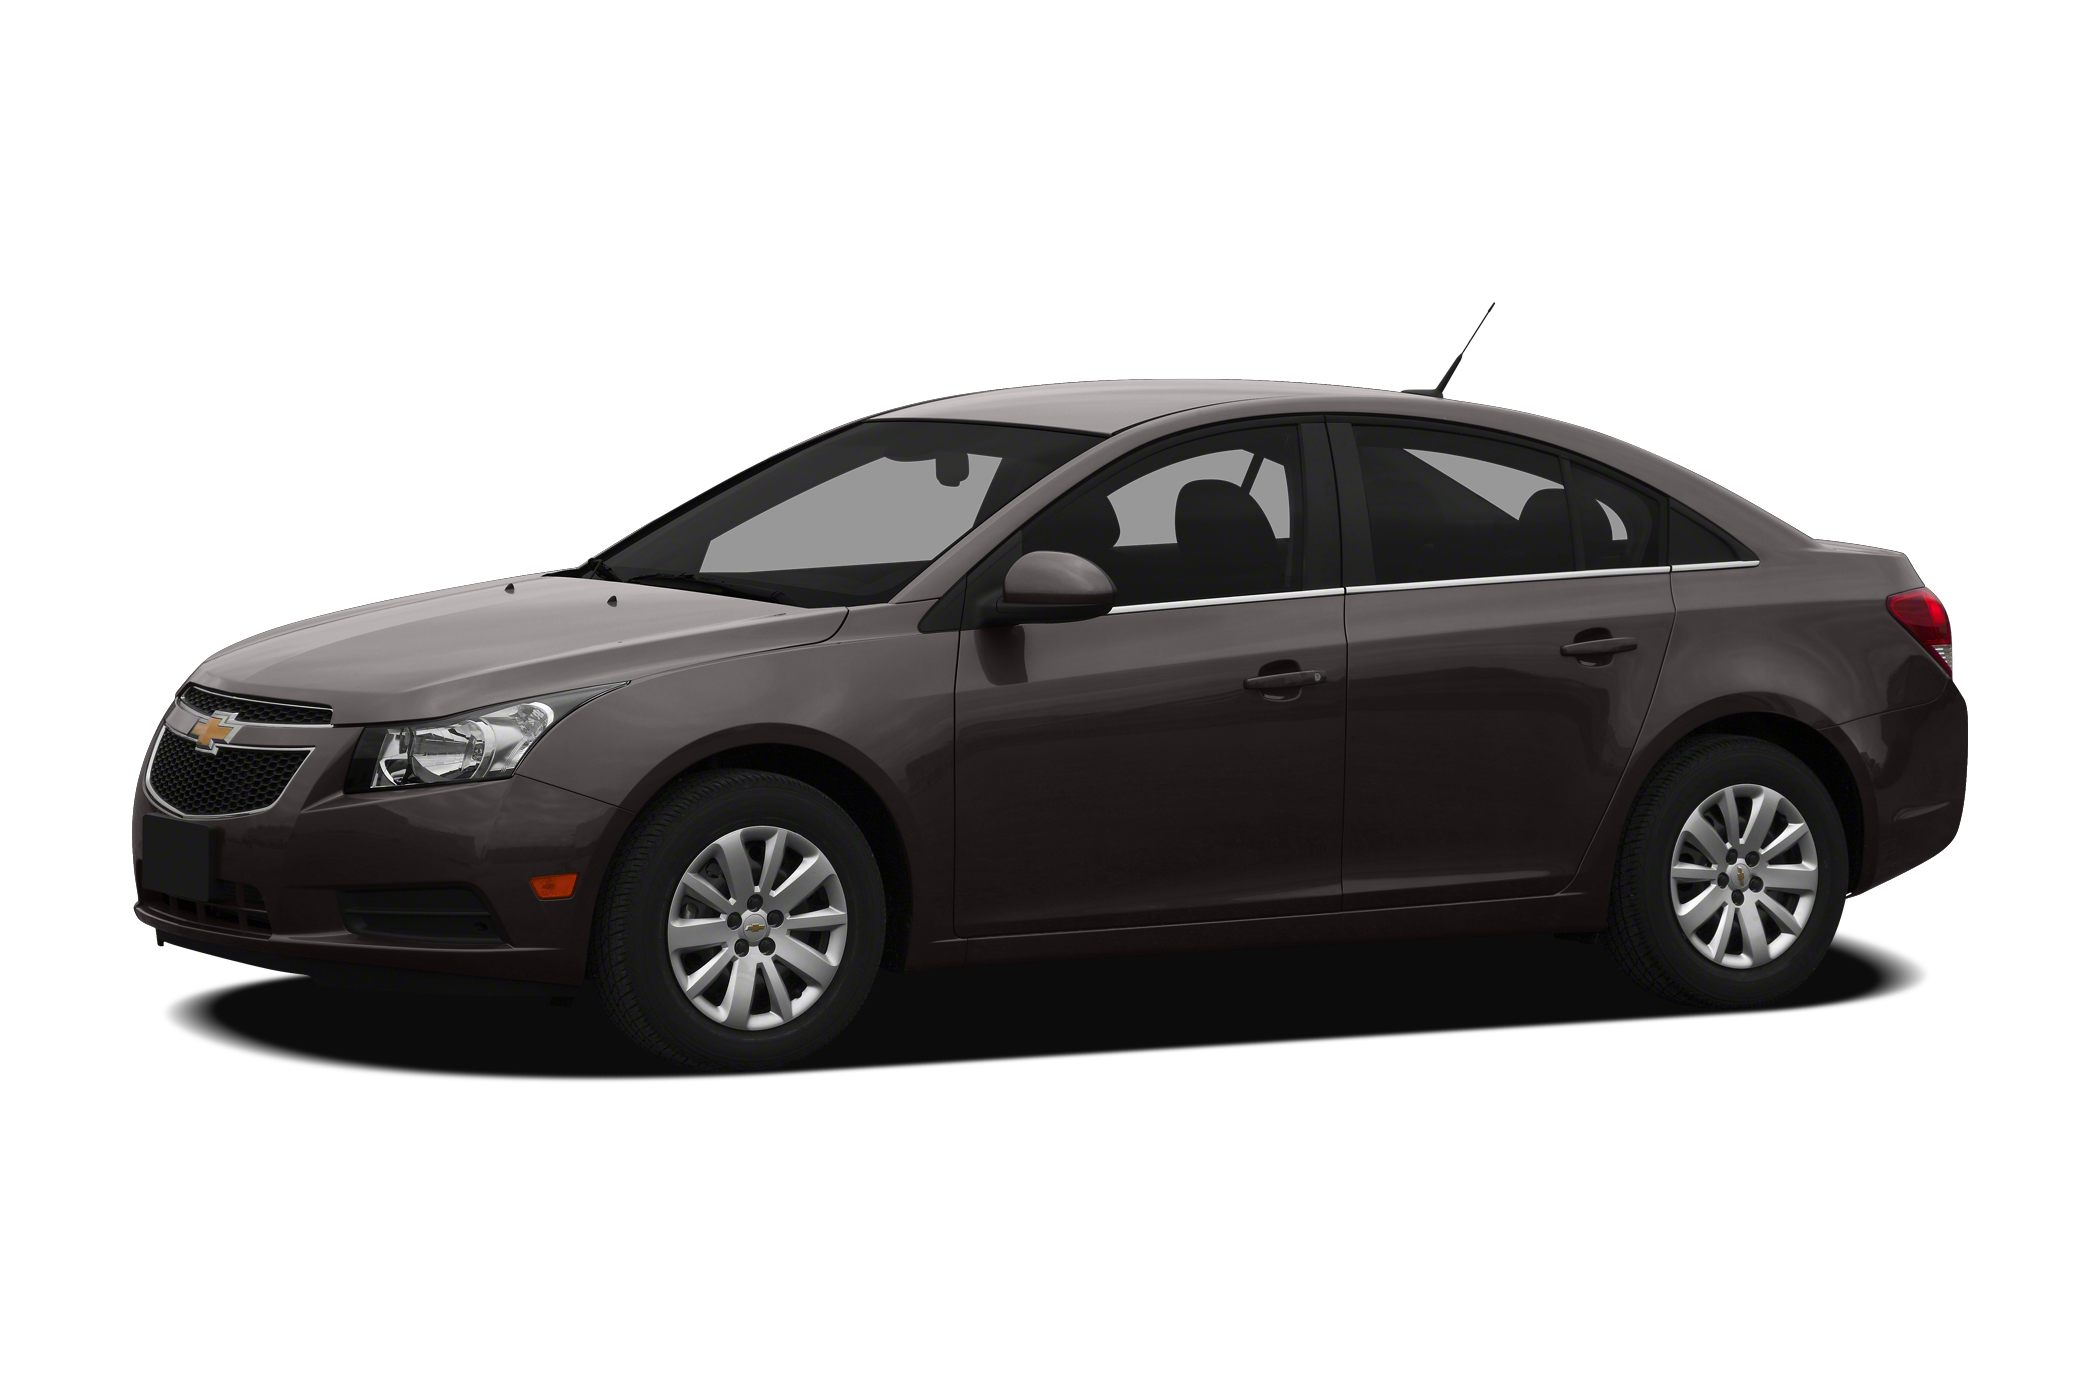 2011 Chevrolet Cruze LT Sedan for sale in Warren for $11,480 with 43,539 miles.